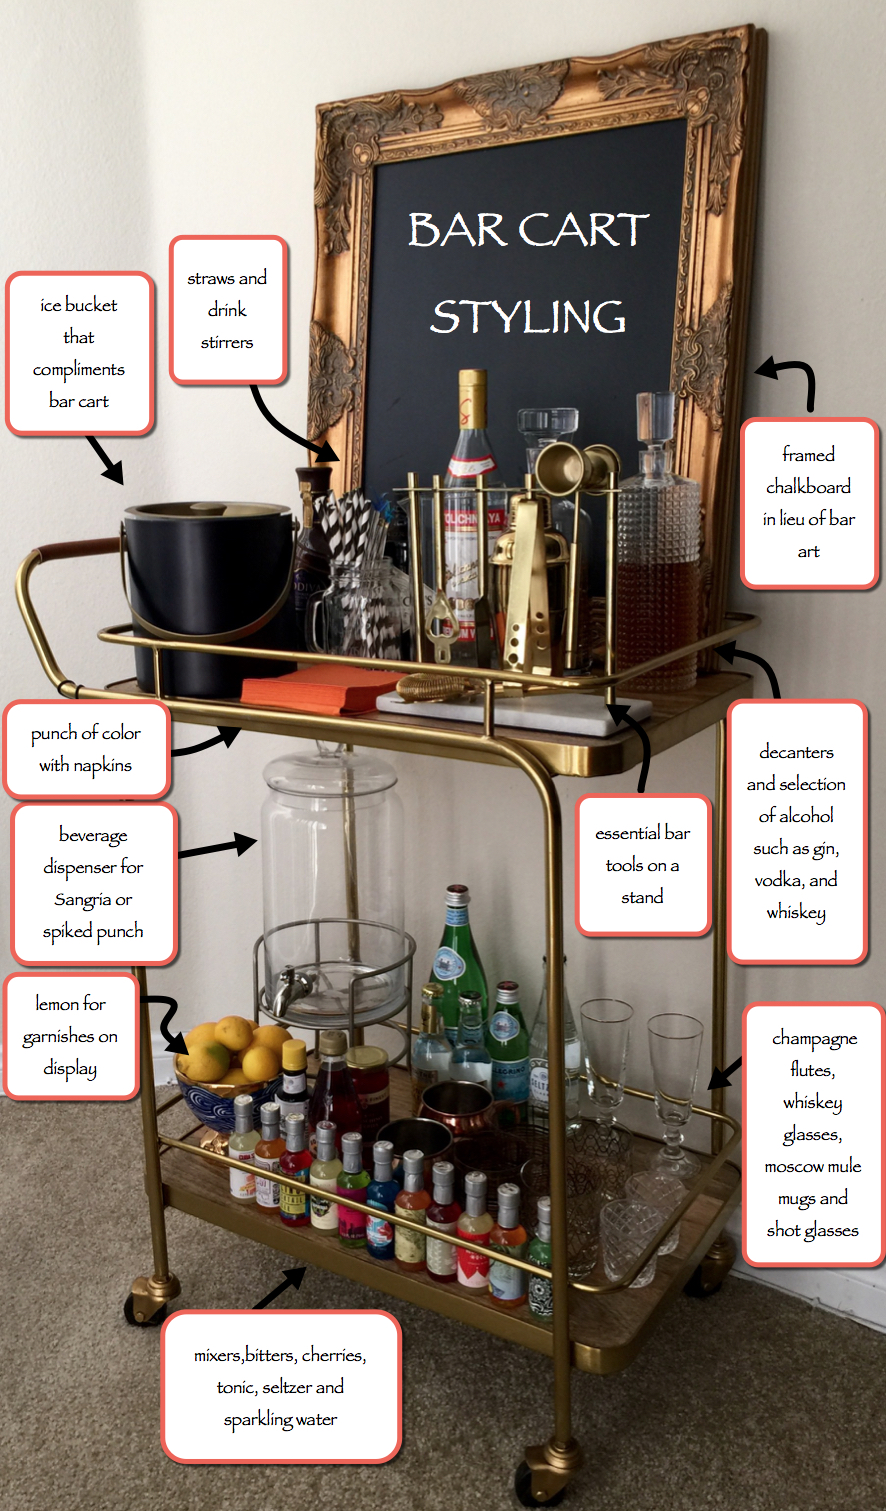 barcart - How To Style A Bar Cart